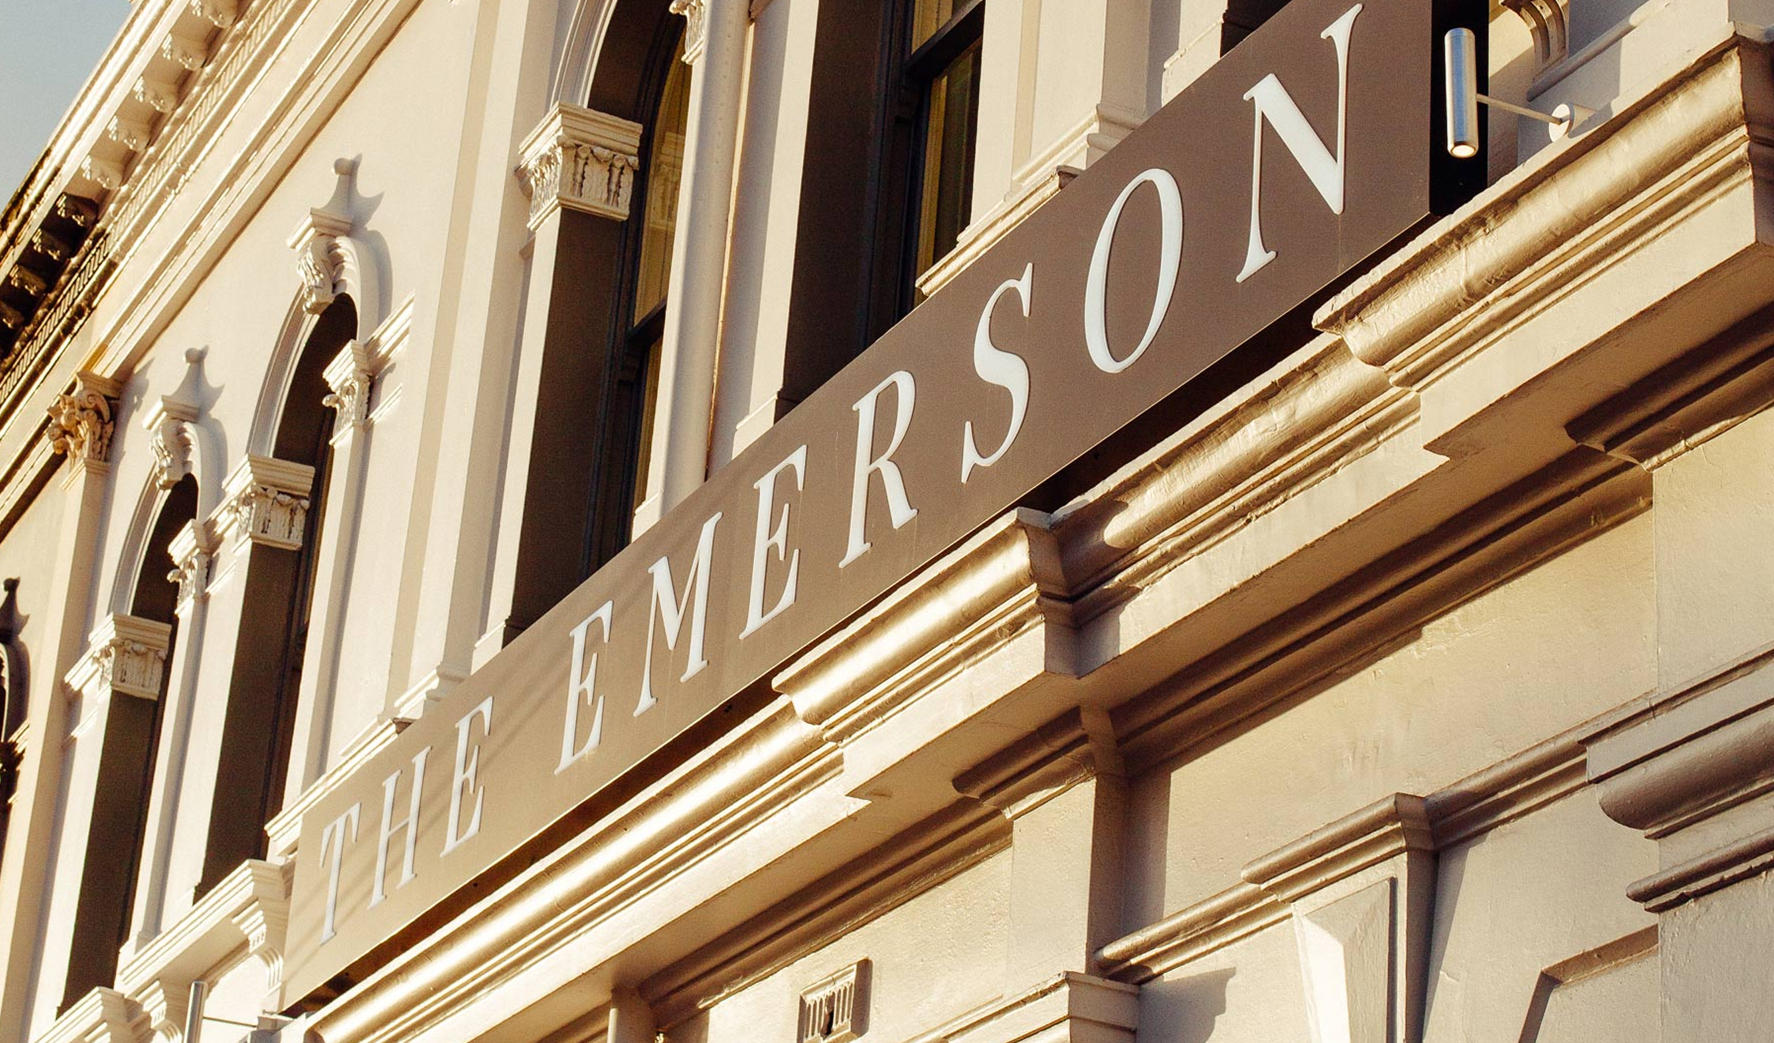 The Emerson